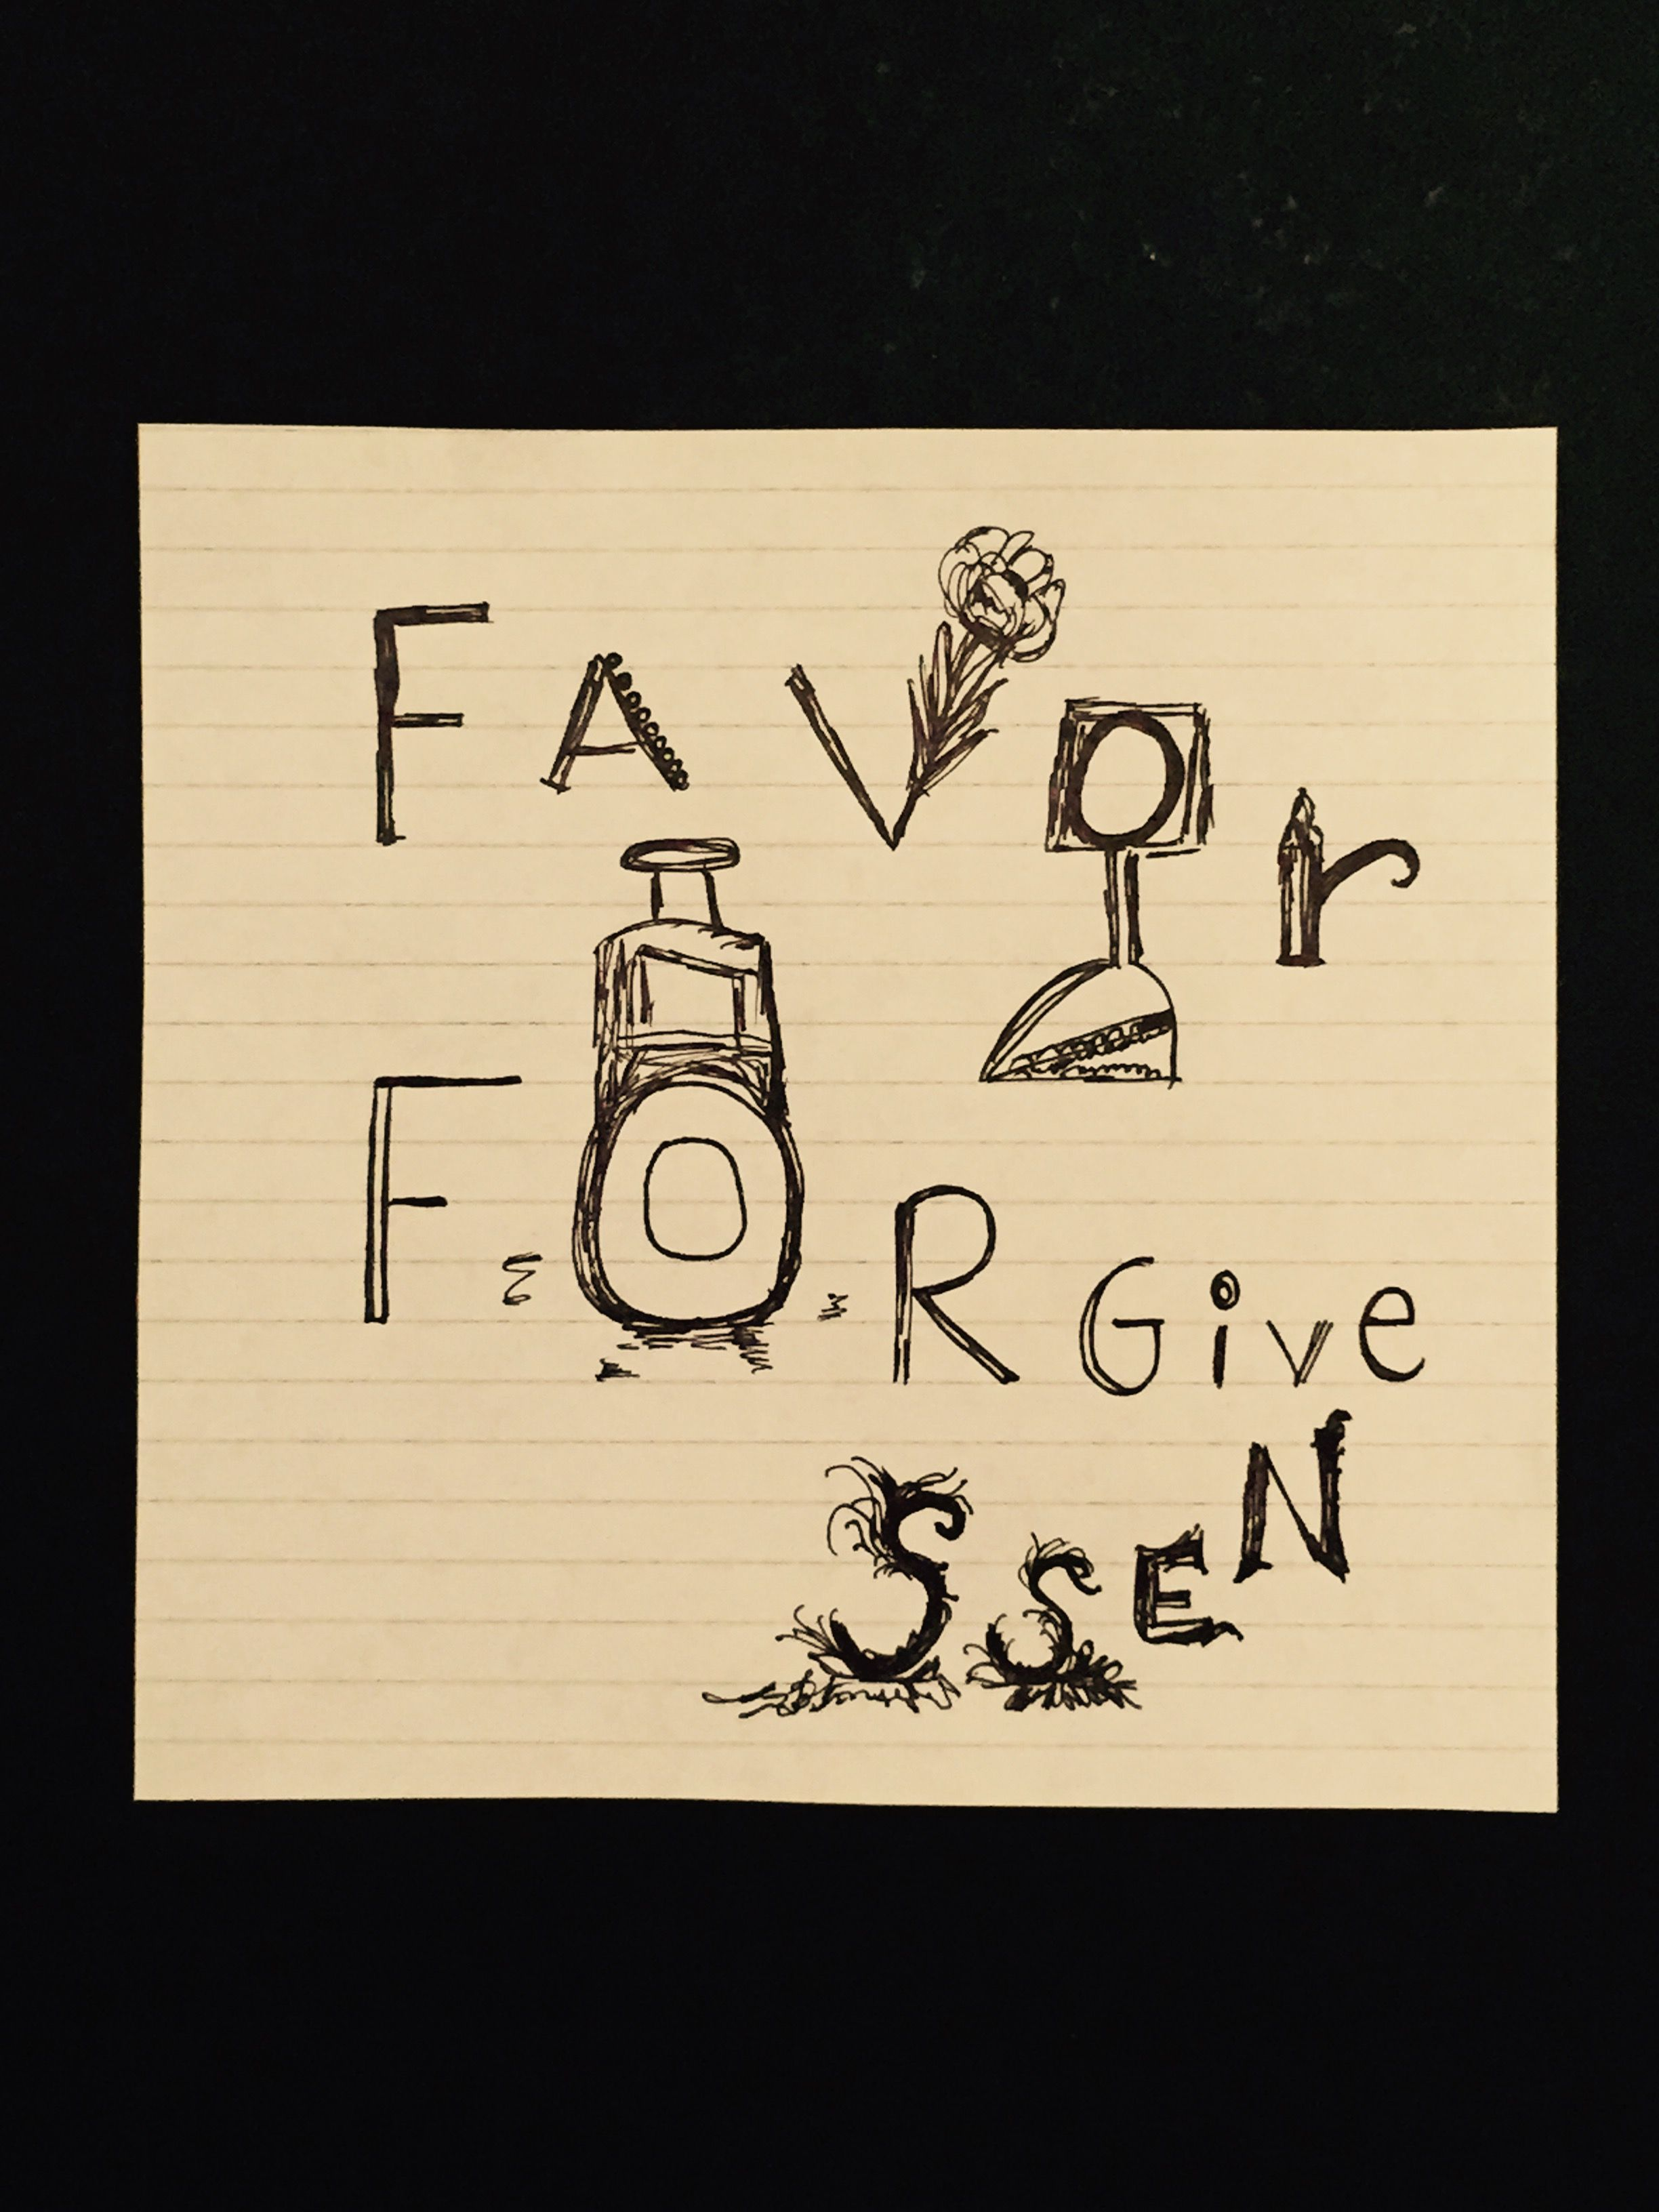 2448x3264 Favor Forgiveness (Drawing) By Marisa Nisely My Quotesdrawings